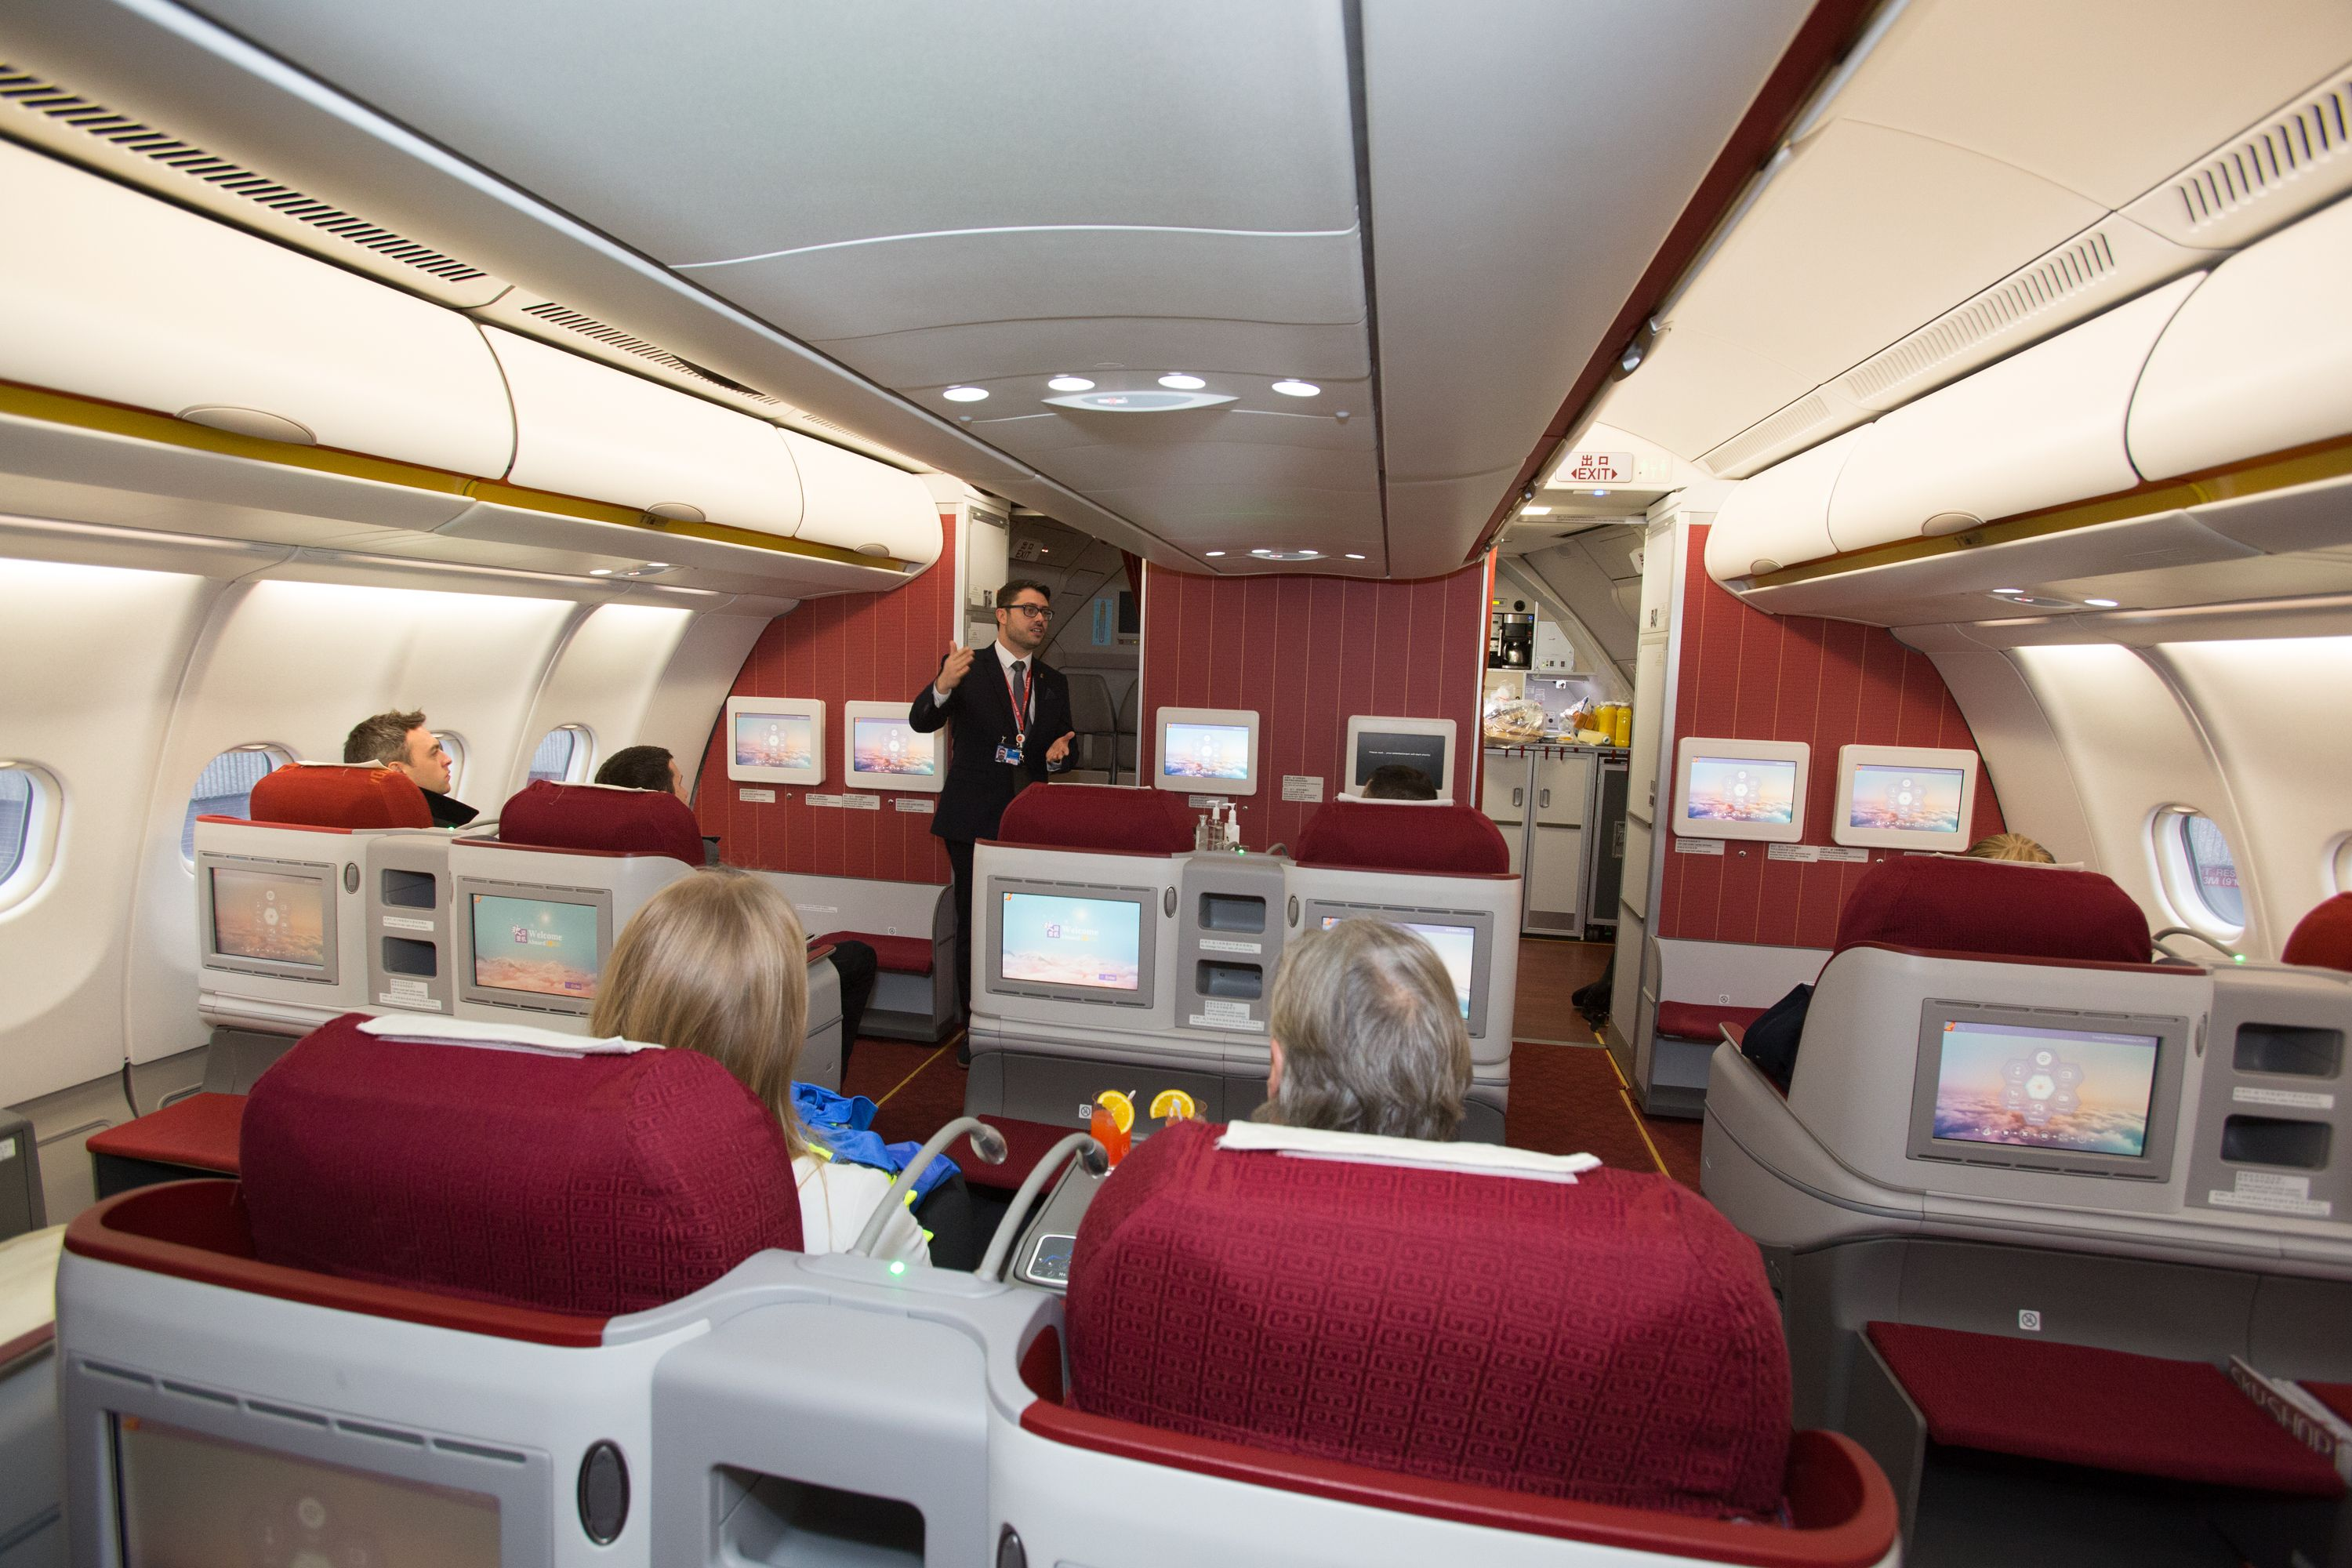 Book tickets through Hainan Airlines Reservation Number